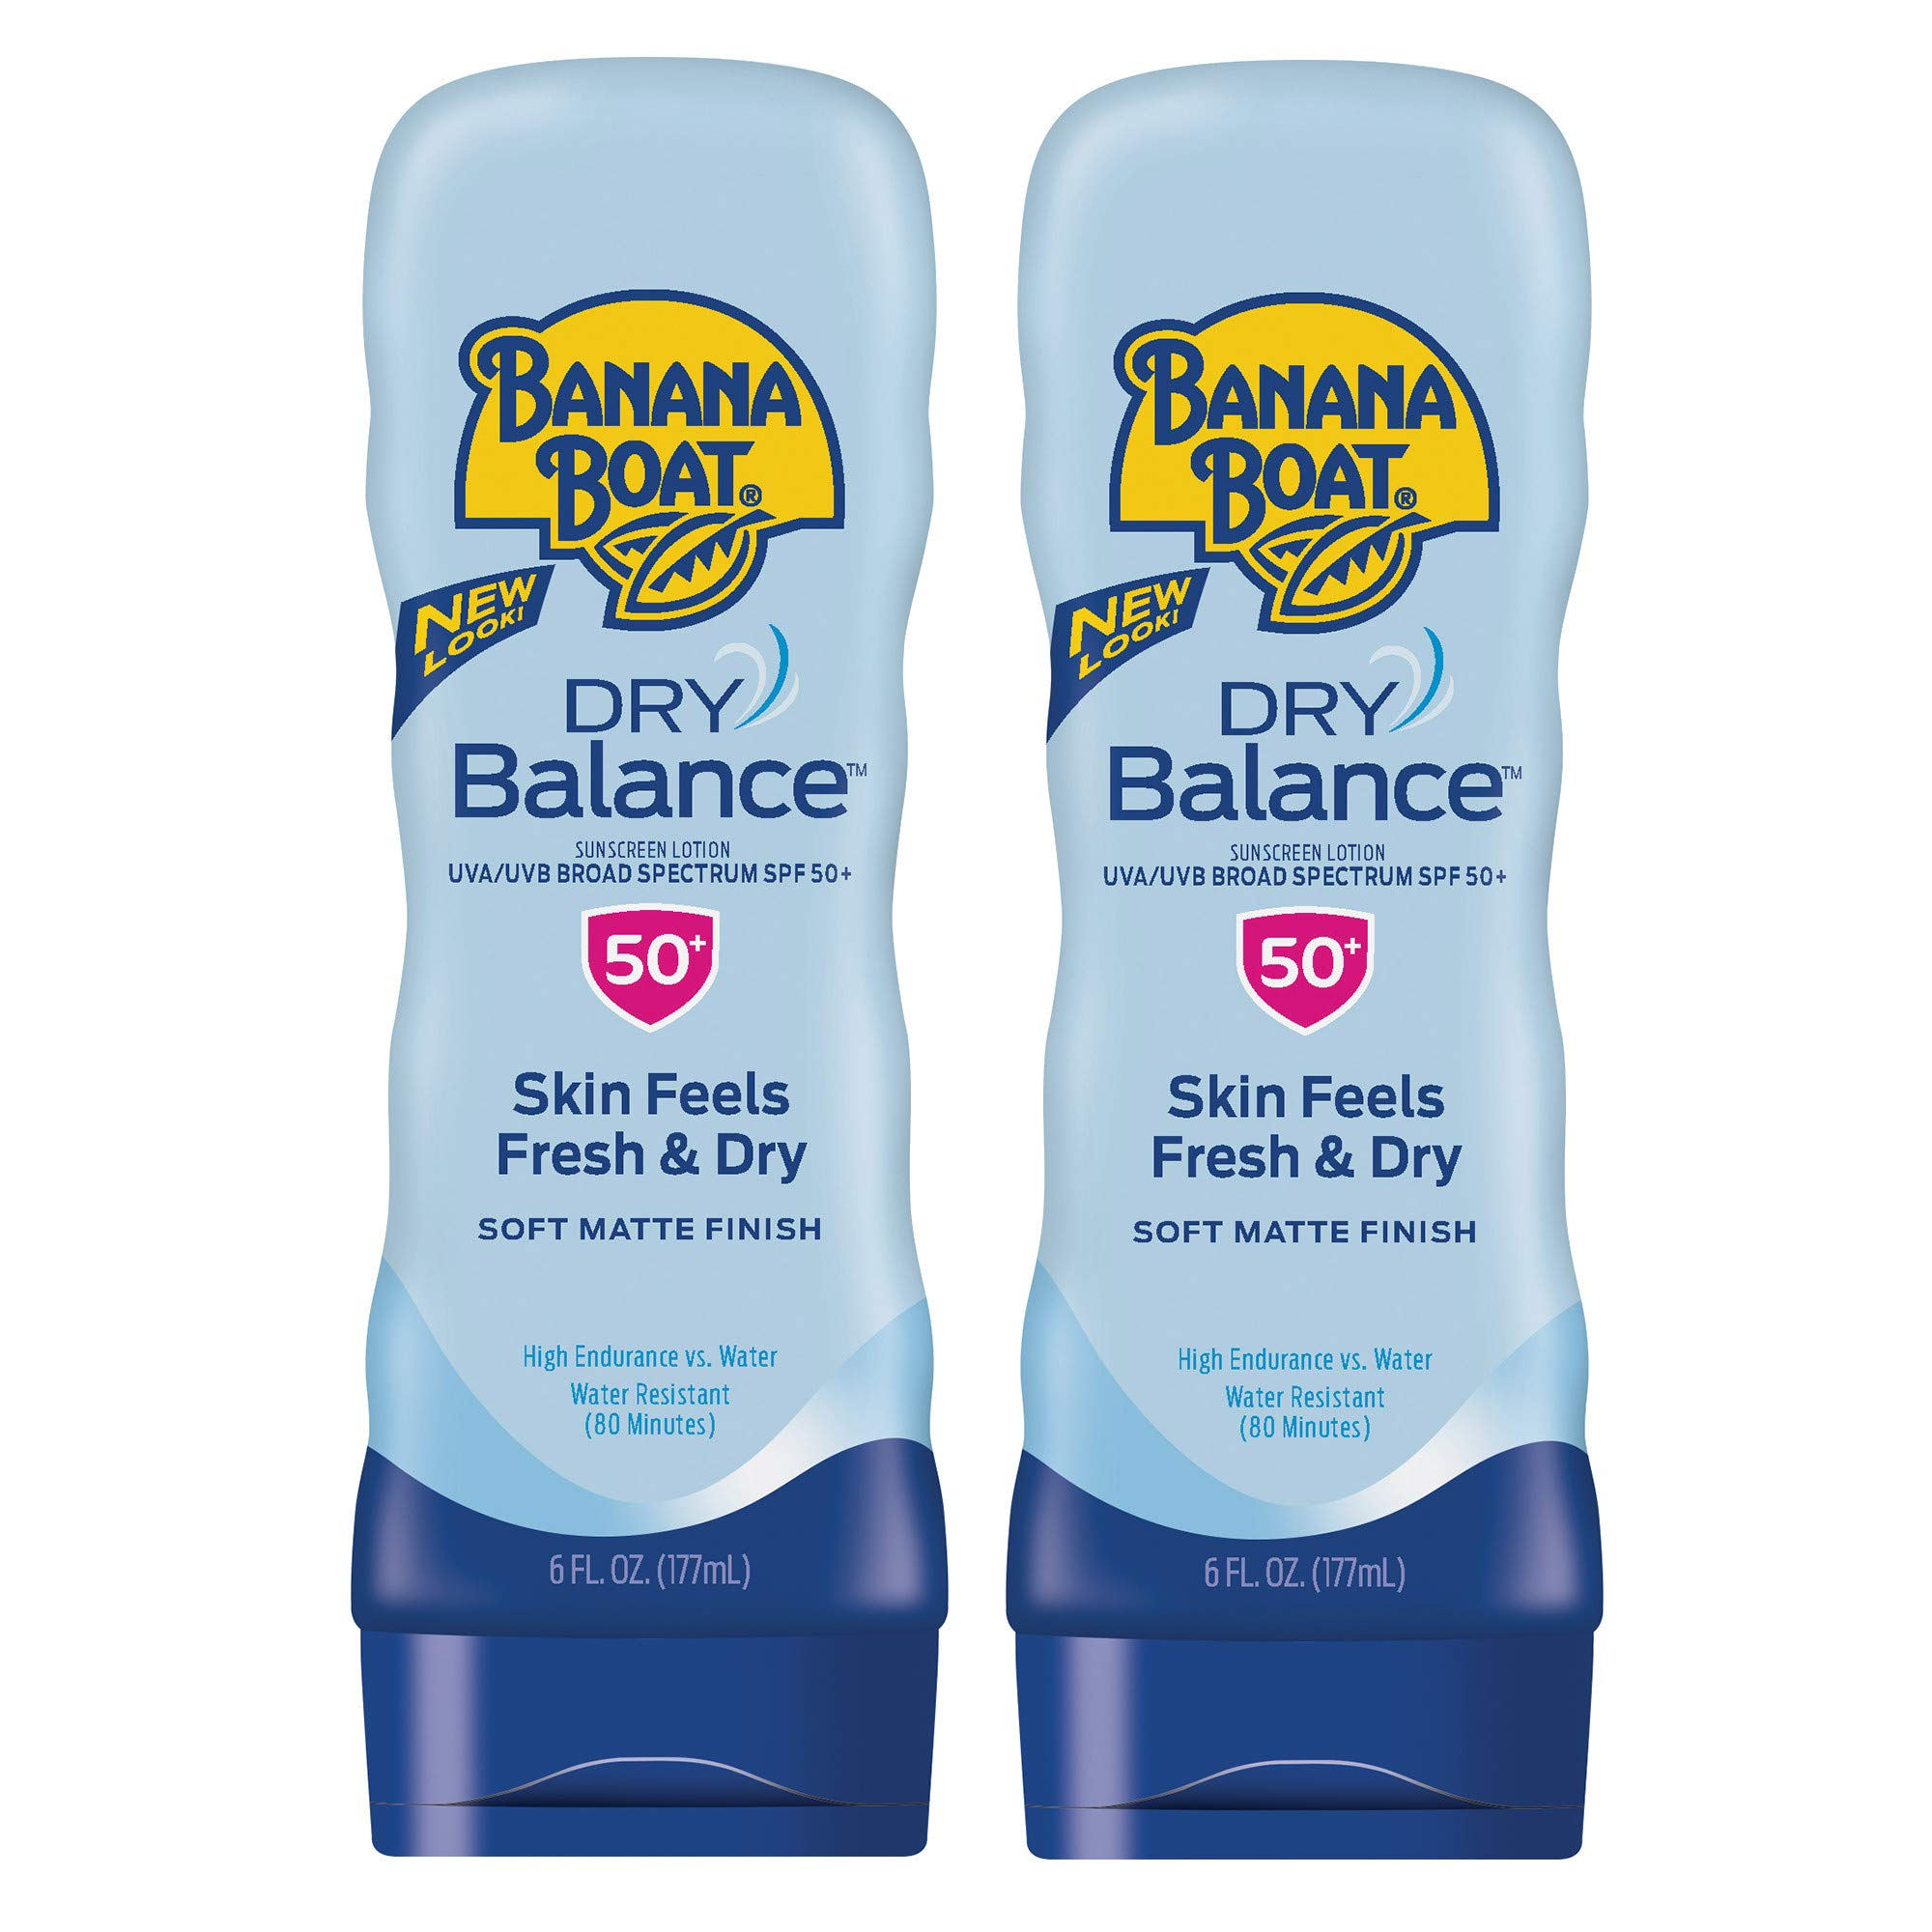 Banana Boat Dry Balance Broad Spectrum Sunscreen Lotion, SPF 50, 6 oz - Twin Pack by Banana Boat